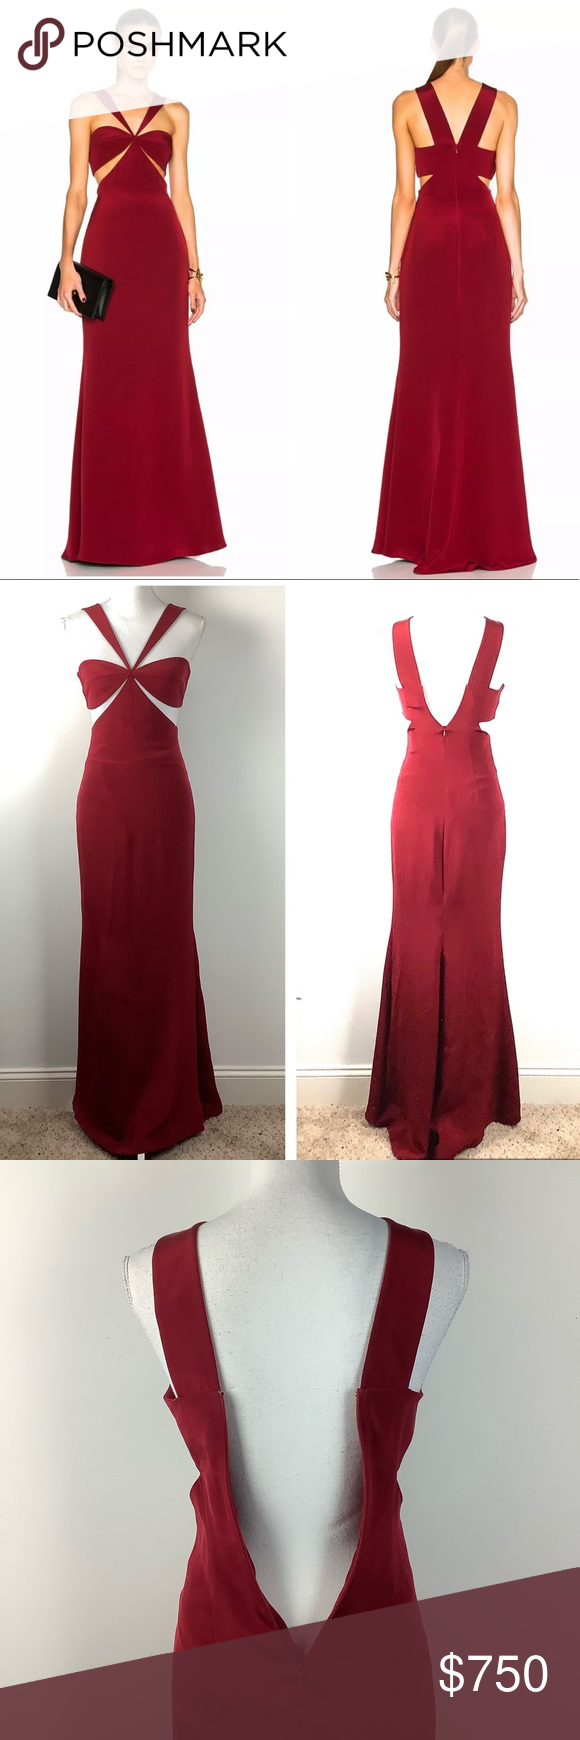 """Cushnie et ochs- Eva cutout silk gown dress Cushnie et ochs eva silk gown dress size 2. Red color. Cutout front. Zipper back. Fully lined. Full length. 100% silk. The dress is brand new without tags.  Measurements are taken laid flat  Chest 14"""" Length 62"""" - 0317 cushnie et ochs Dresses"""